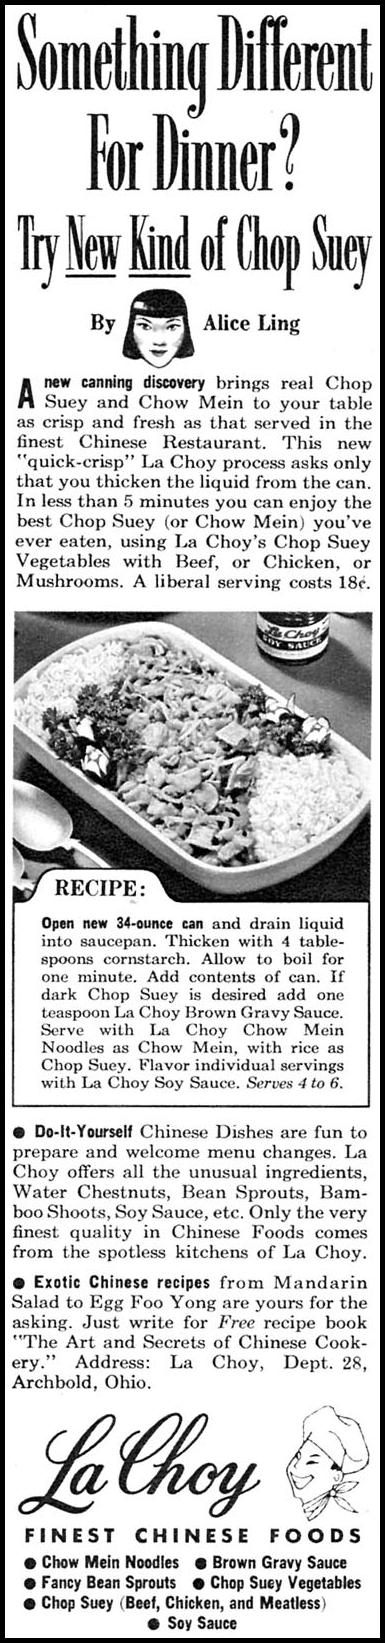 LA CHOY AMERICAN COOKED CHINESE FOODS FAMILY CIRCLE 02/01/1958 p. 60